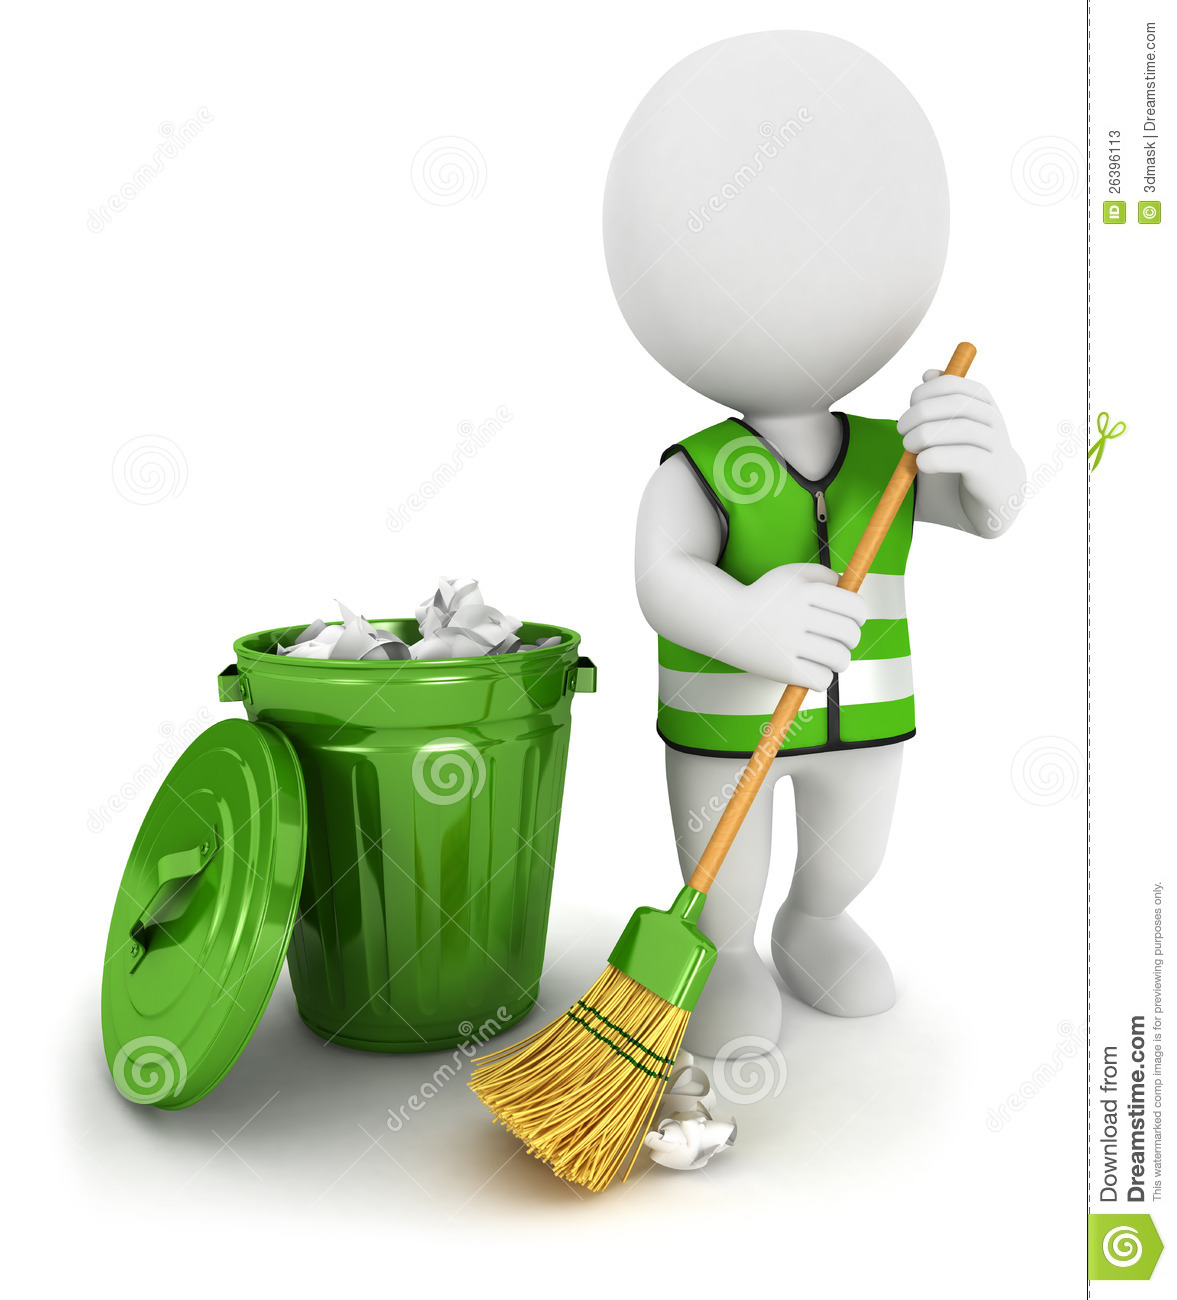 Stock Photos 3d White People Street Sweeper Image26396113 on Small Open Concept Floor Plans